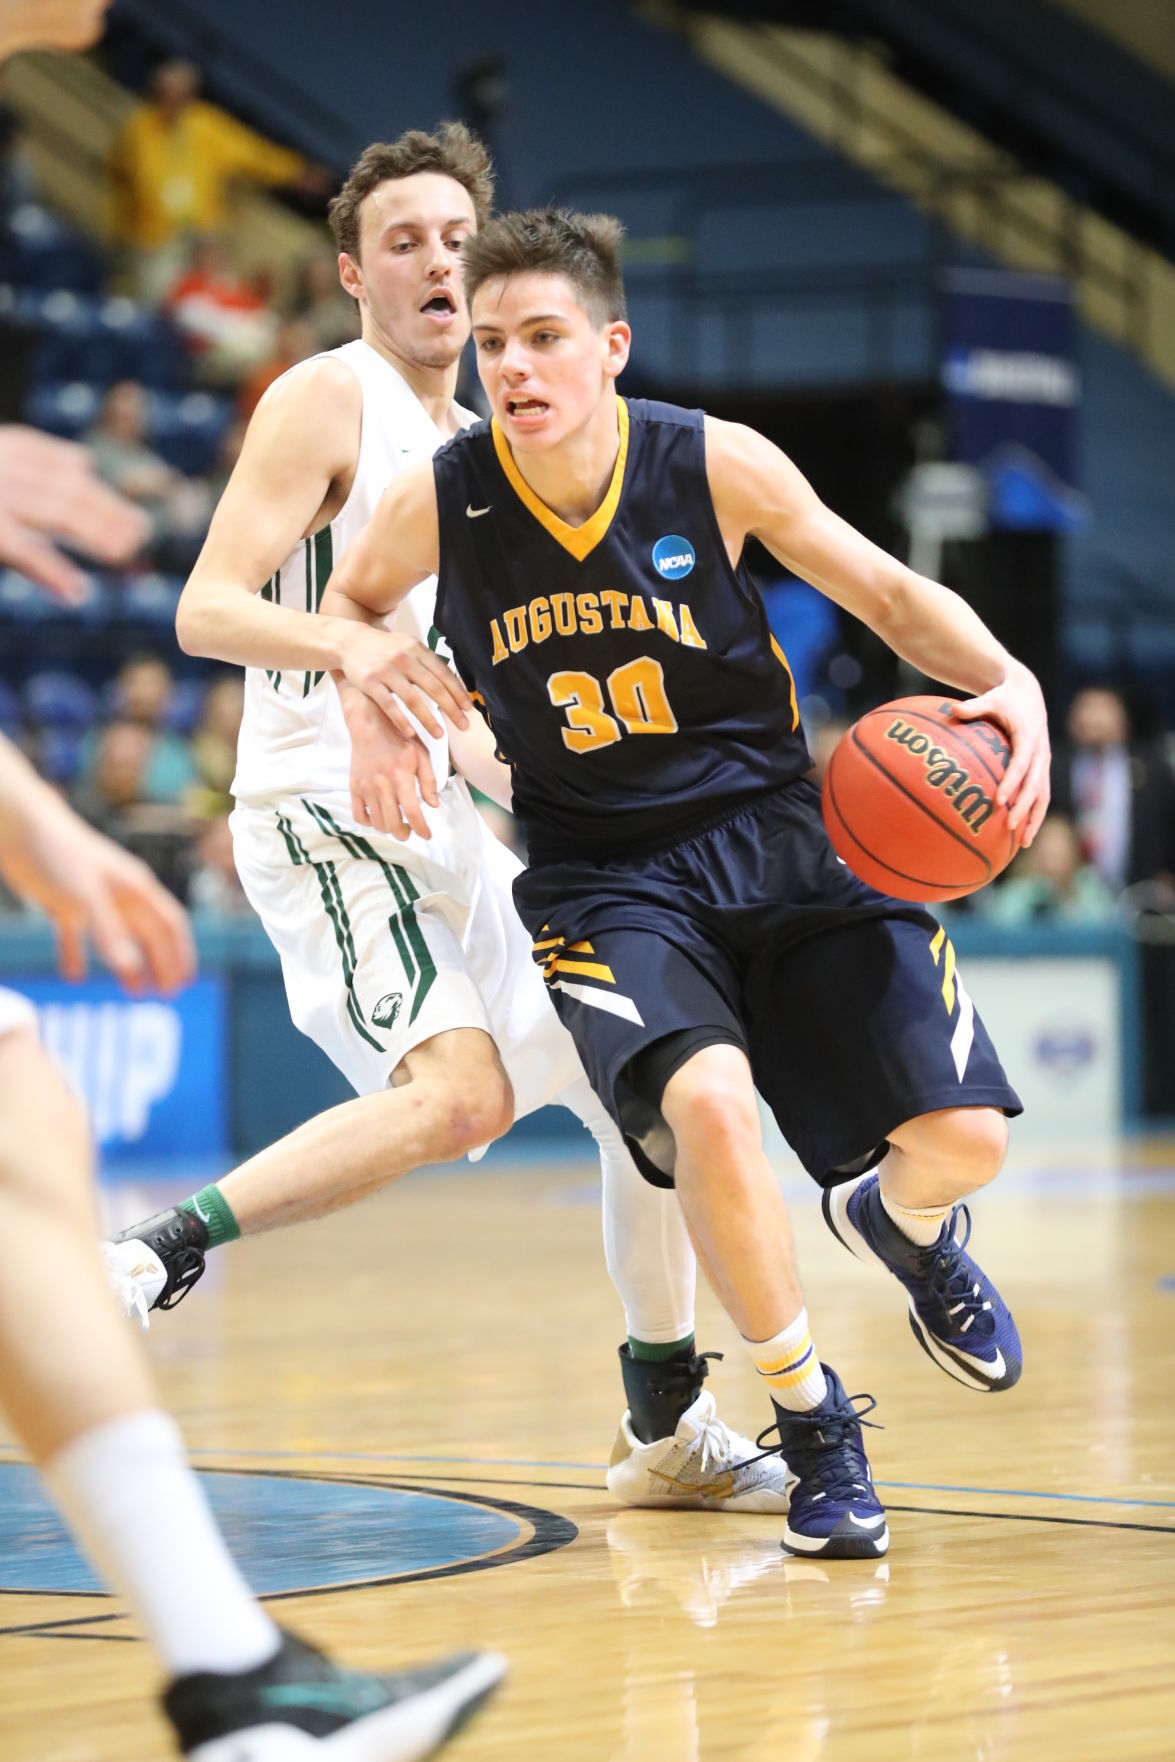 Augustana title game